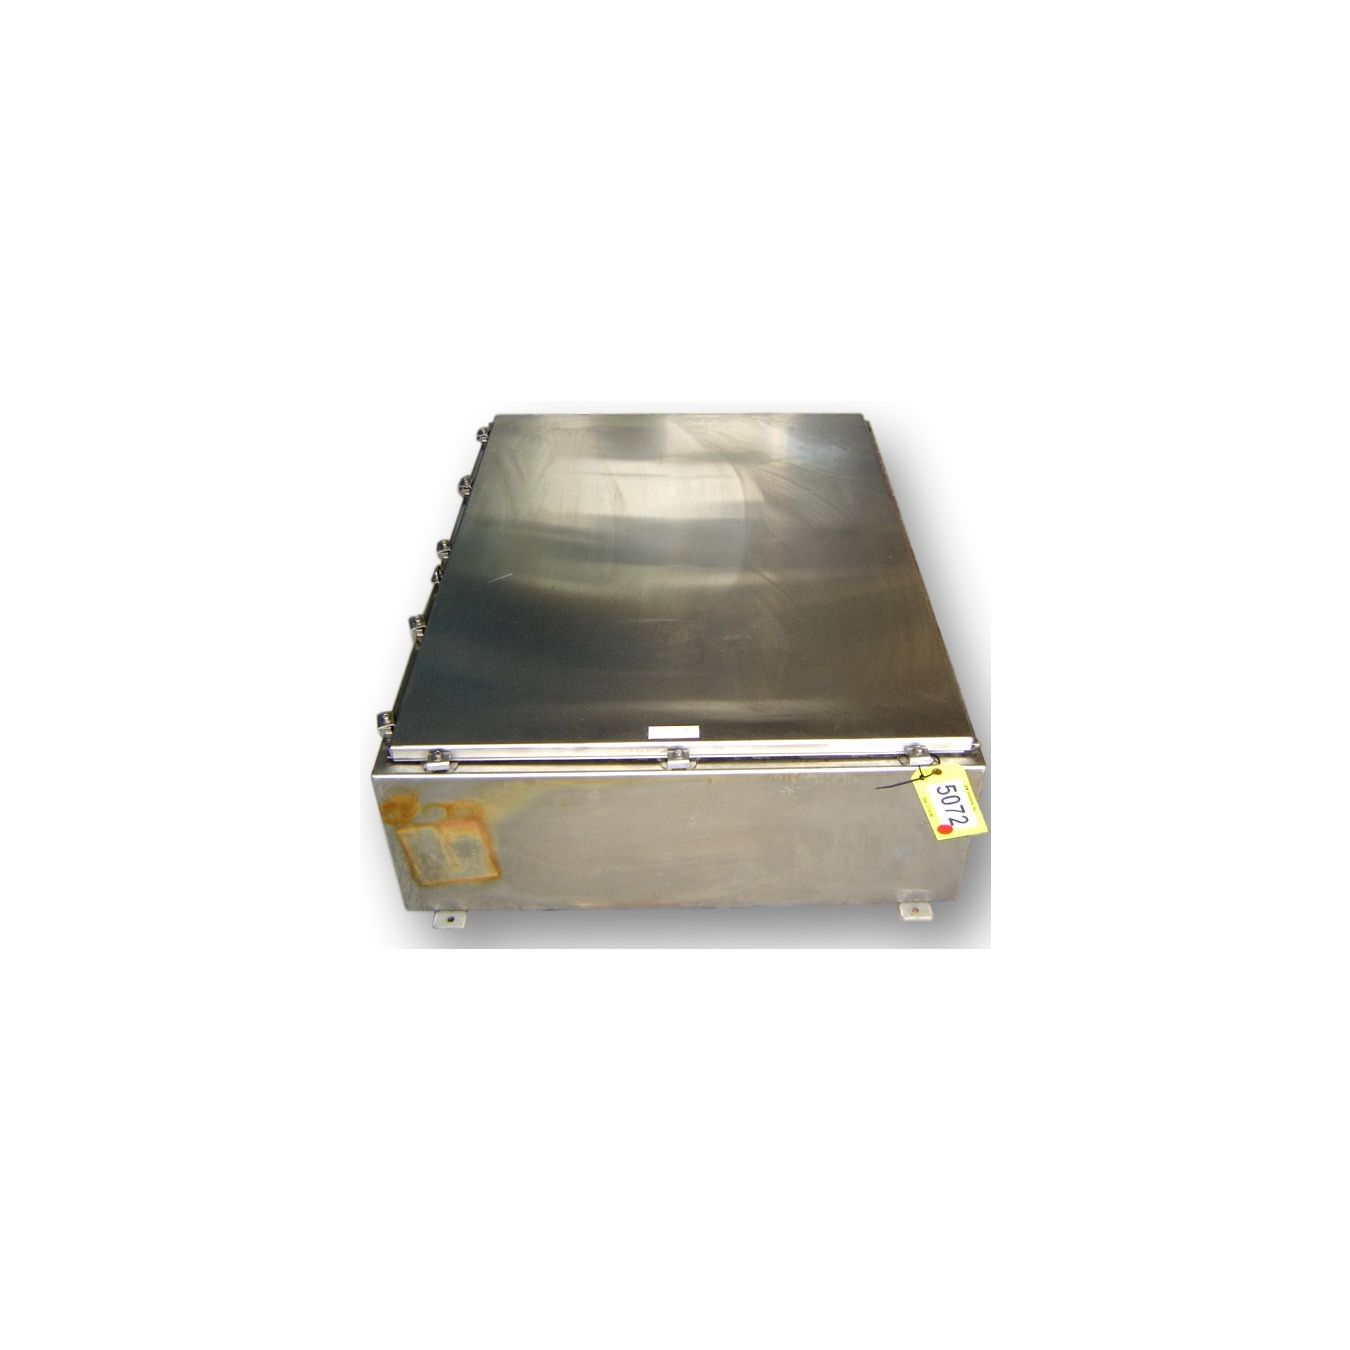 Large stainless steel systems control box electrical